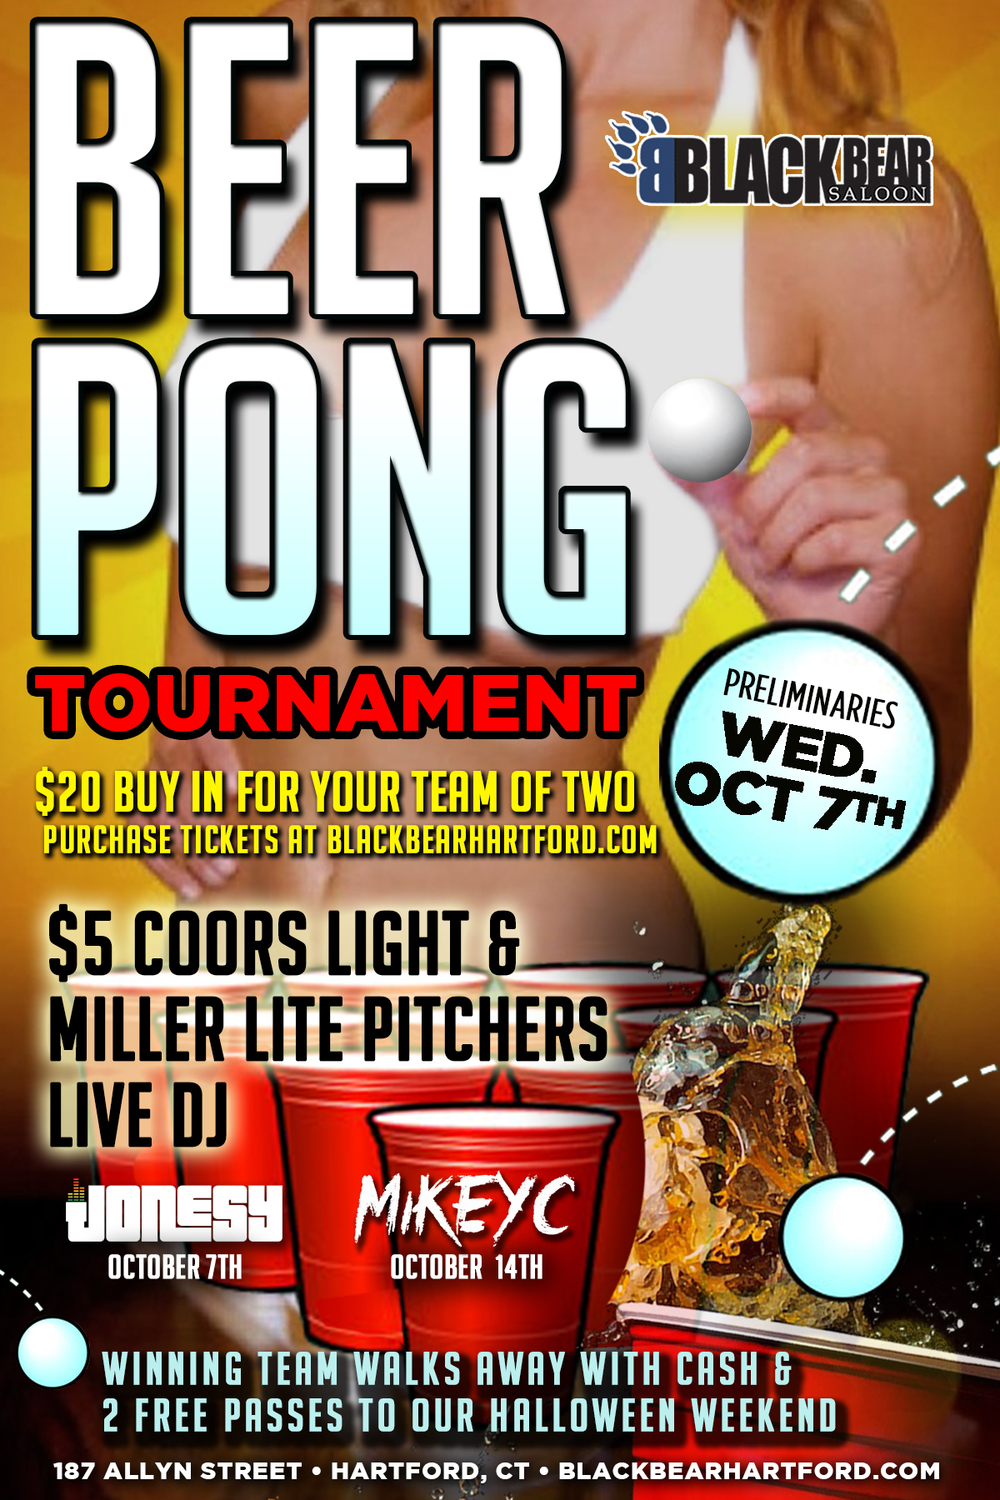 Wednesday, Oct. 7th join us at Black Bear Saloon for the Beer Pong Tournament + Music by yours truly.  Music starts at 9!  $5 Coors Light + Miller Lite Pitchers.